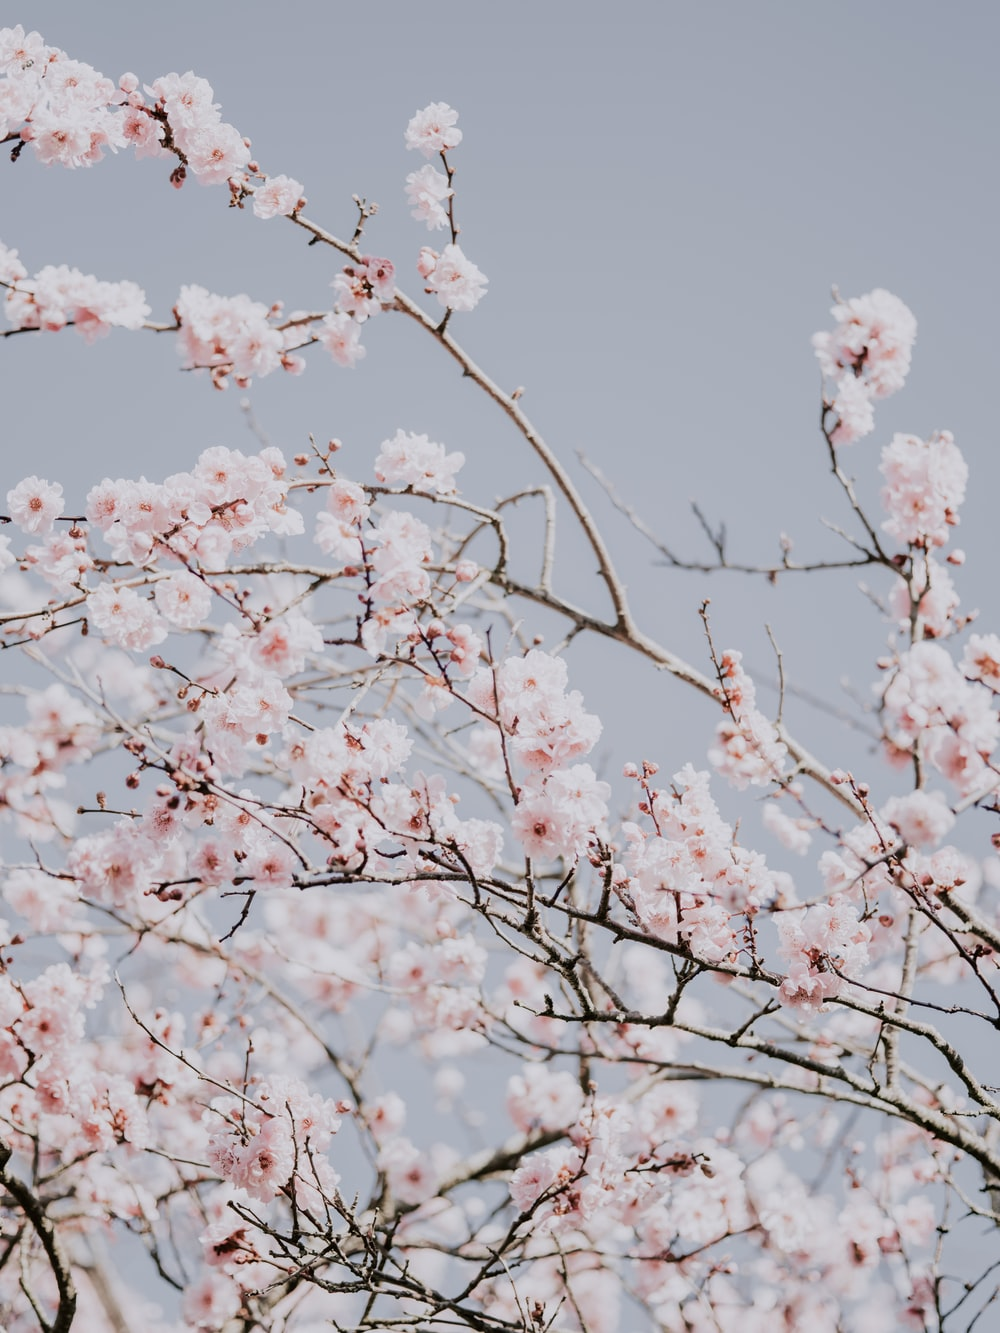 cherry blossom at bloom